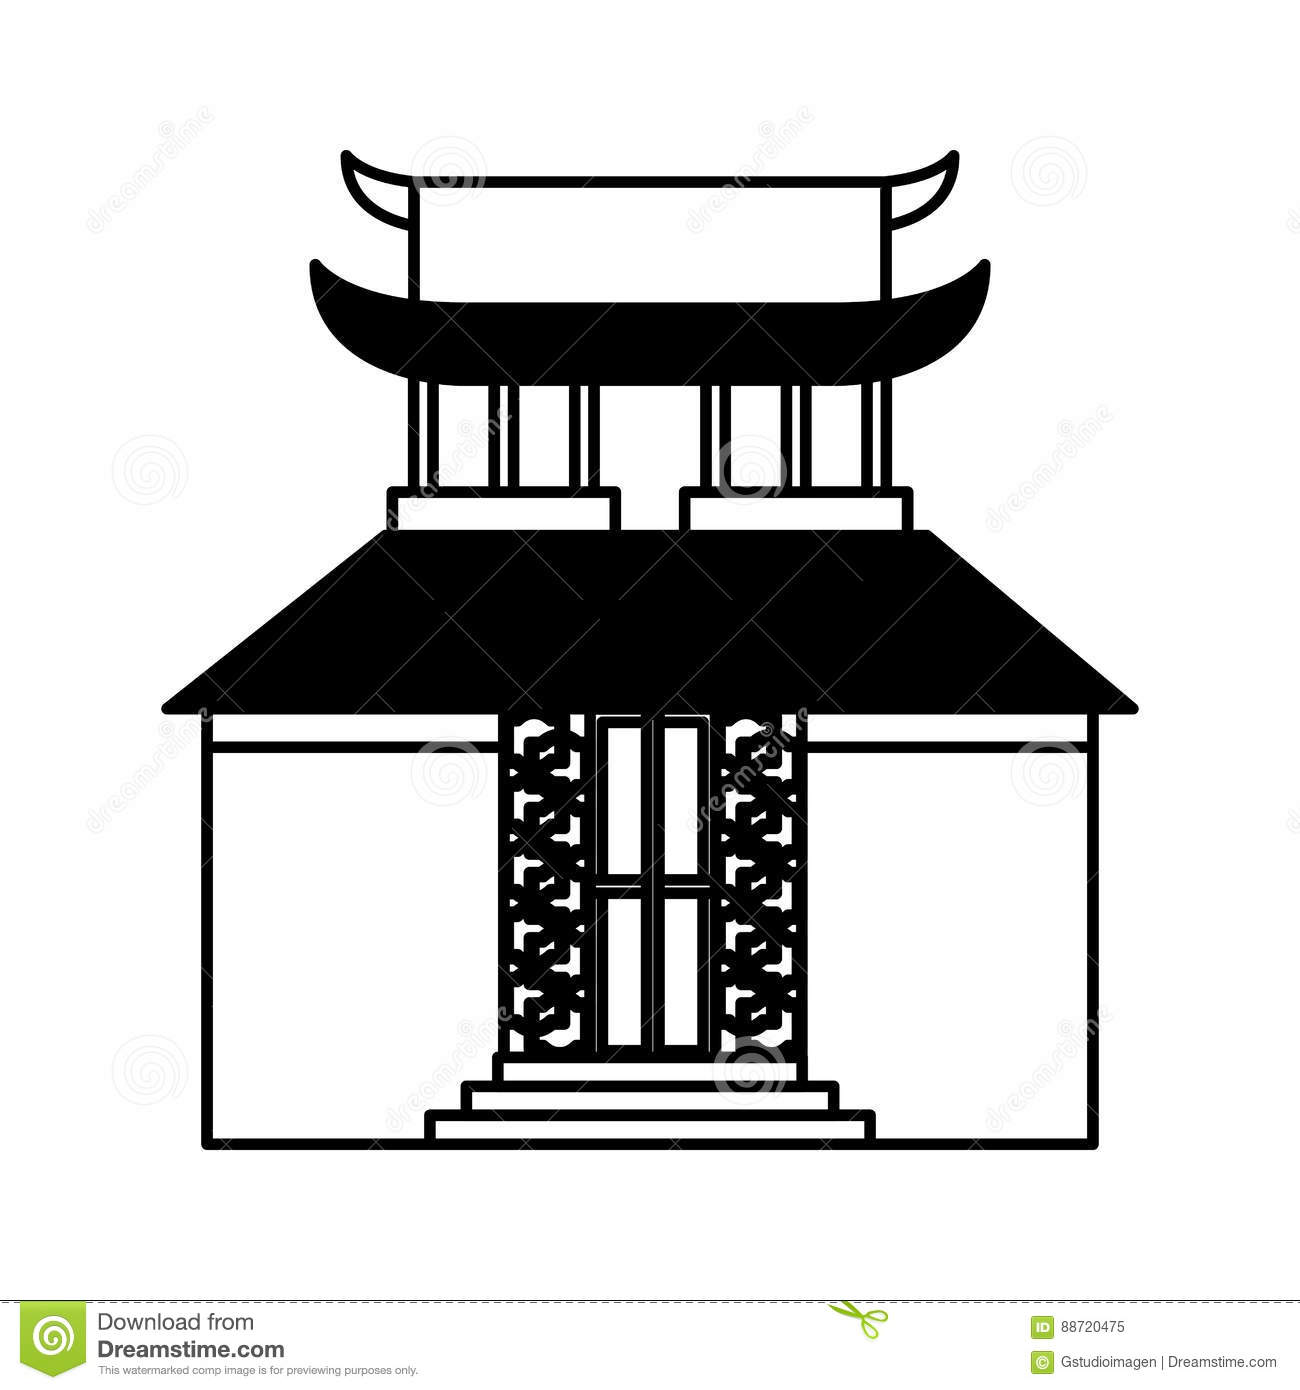 asian building castle icon stock vector - image: 88720475